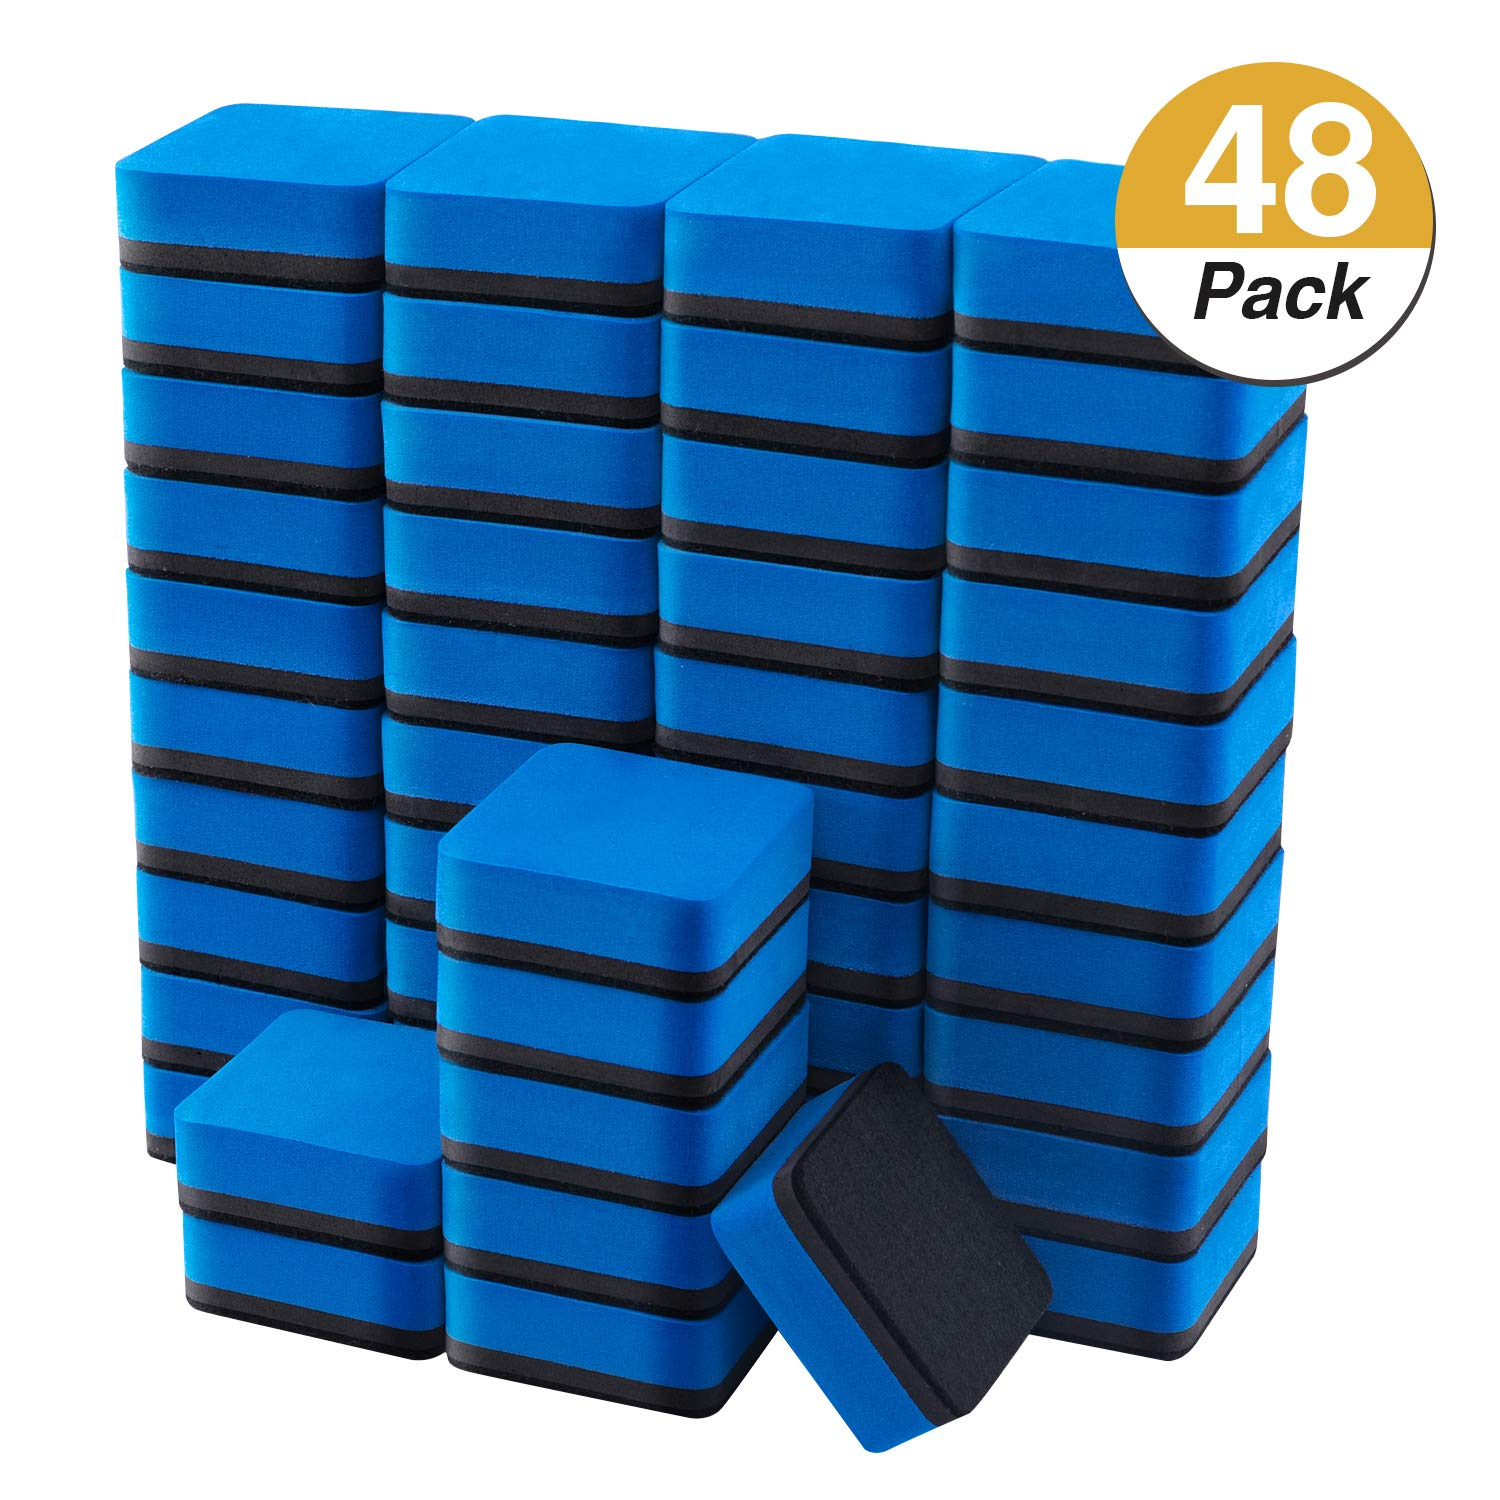 Whiteboard Eraser 20Pack Whiteboard Dry Eraser,Square Shape Chalkboard Cleaners Wiper for Classroom Office Home School and Perfect Gift for Kids